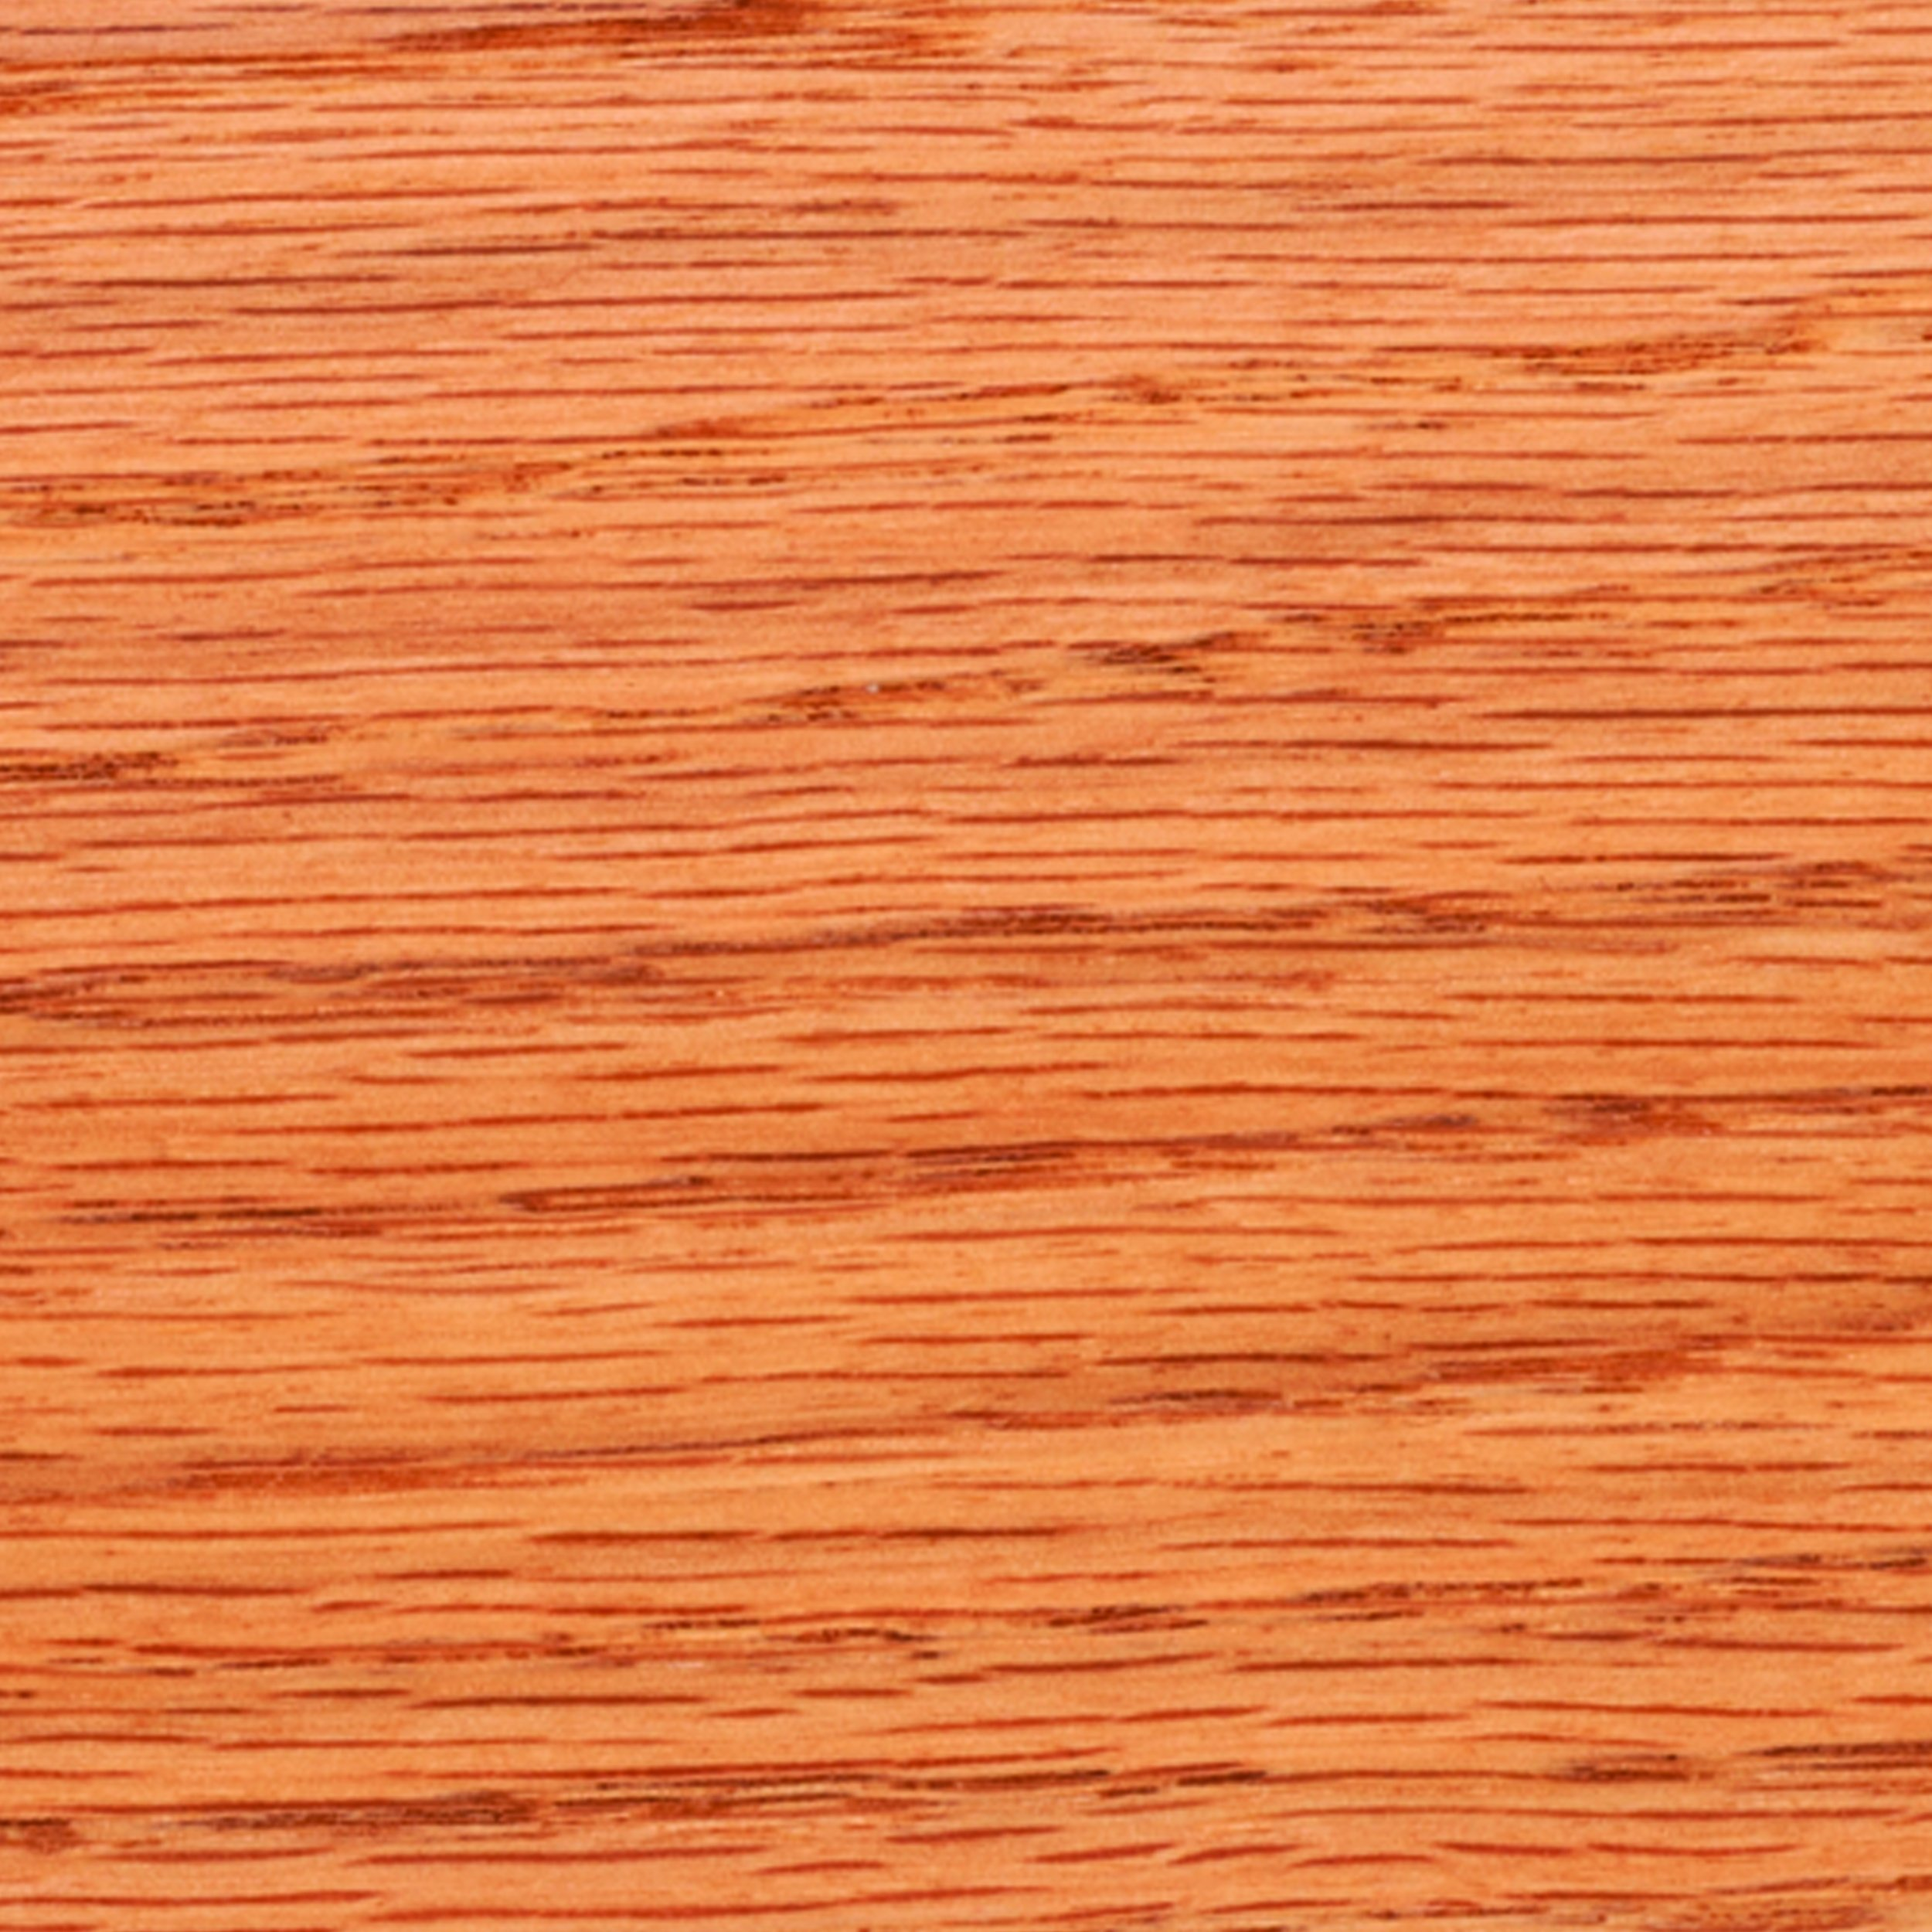 Oak, Red 3'' x 3'' x 36'' by Woodcraft Woodshop (Image #1)